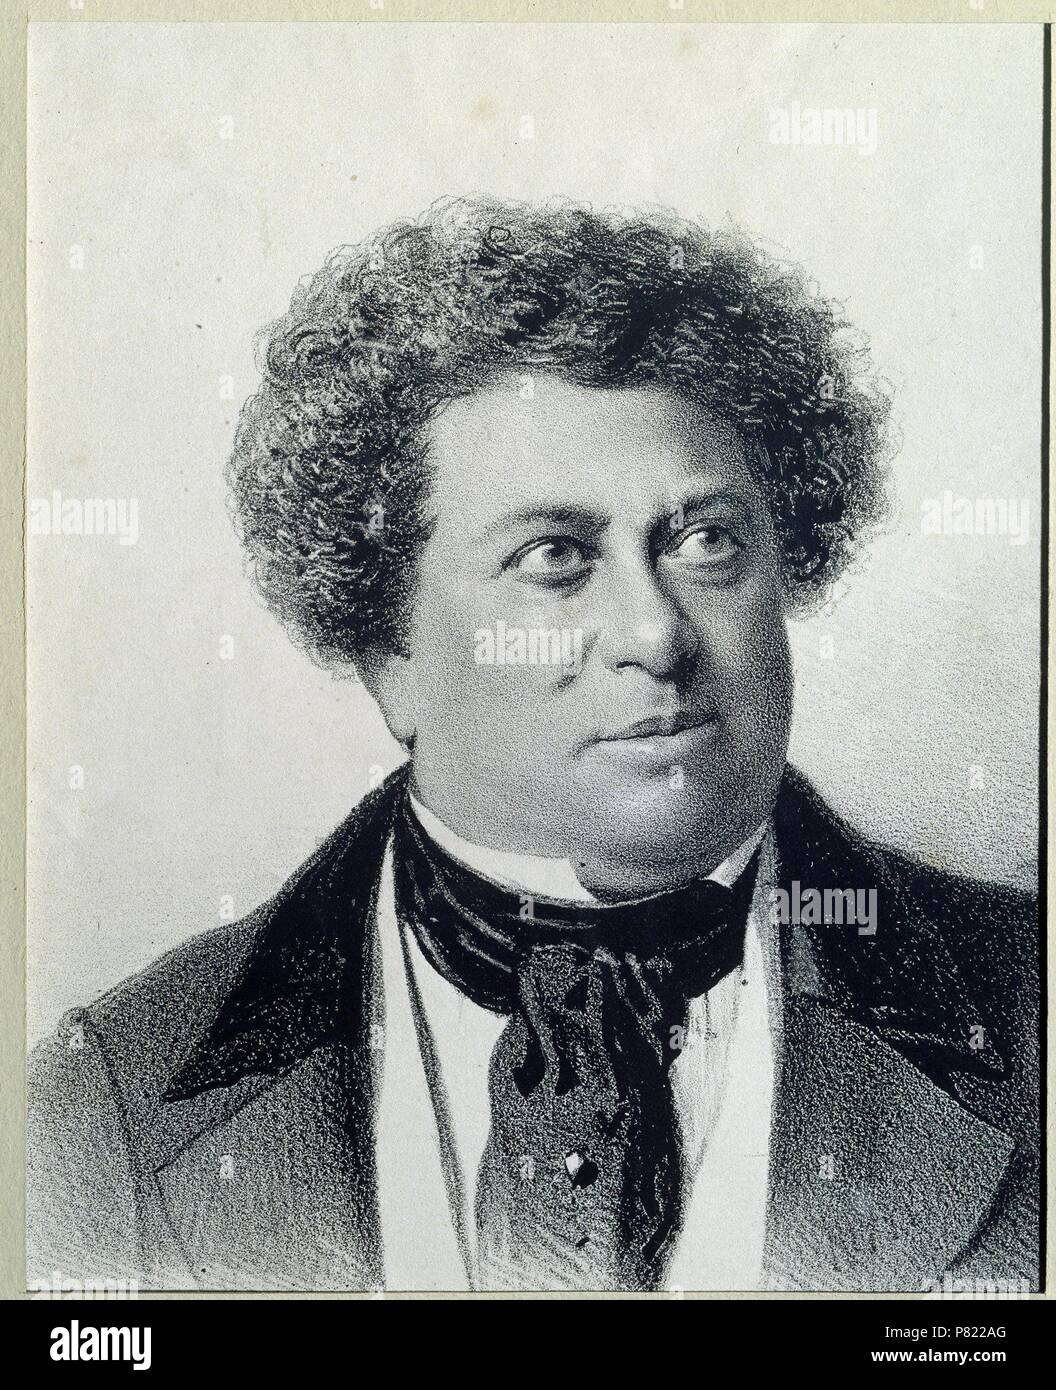 Why did Pushkin fake his death and become Alexander Dumas